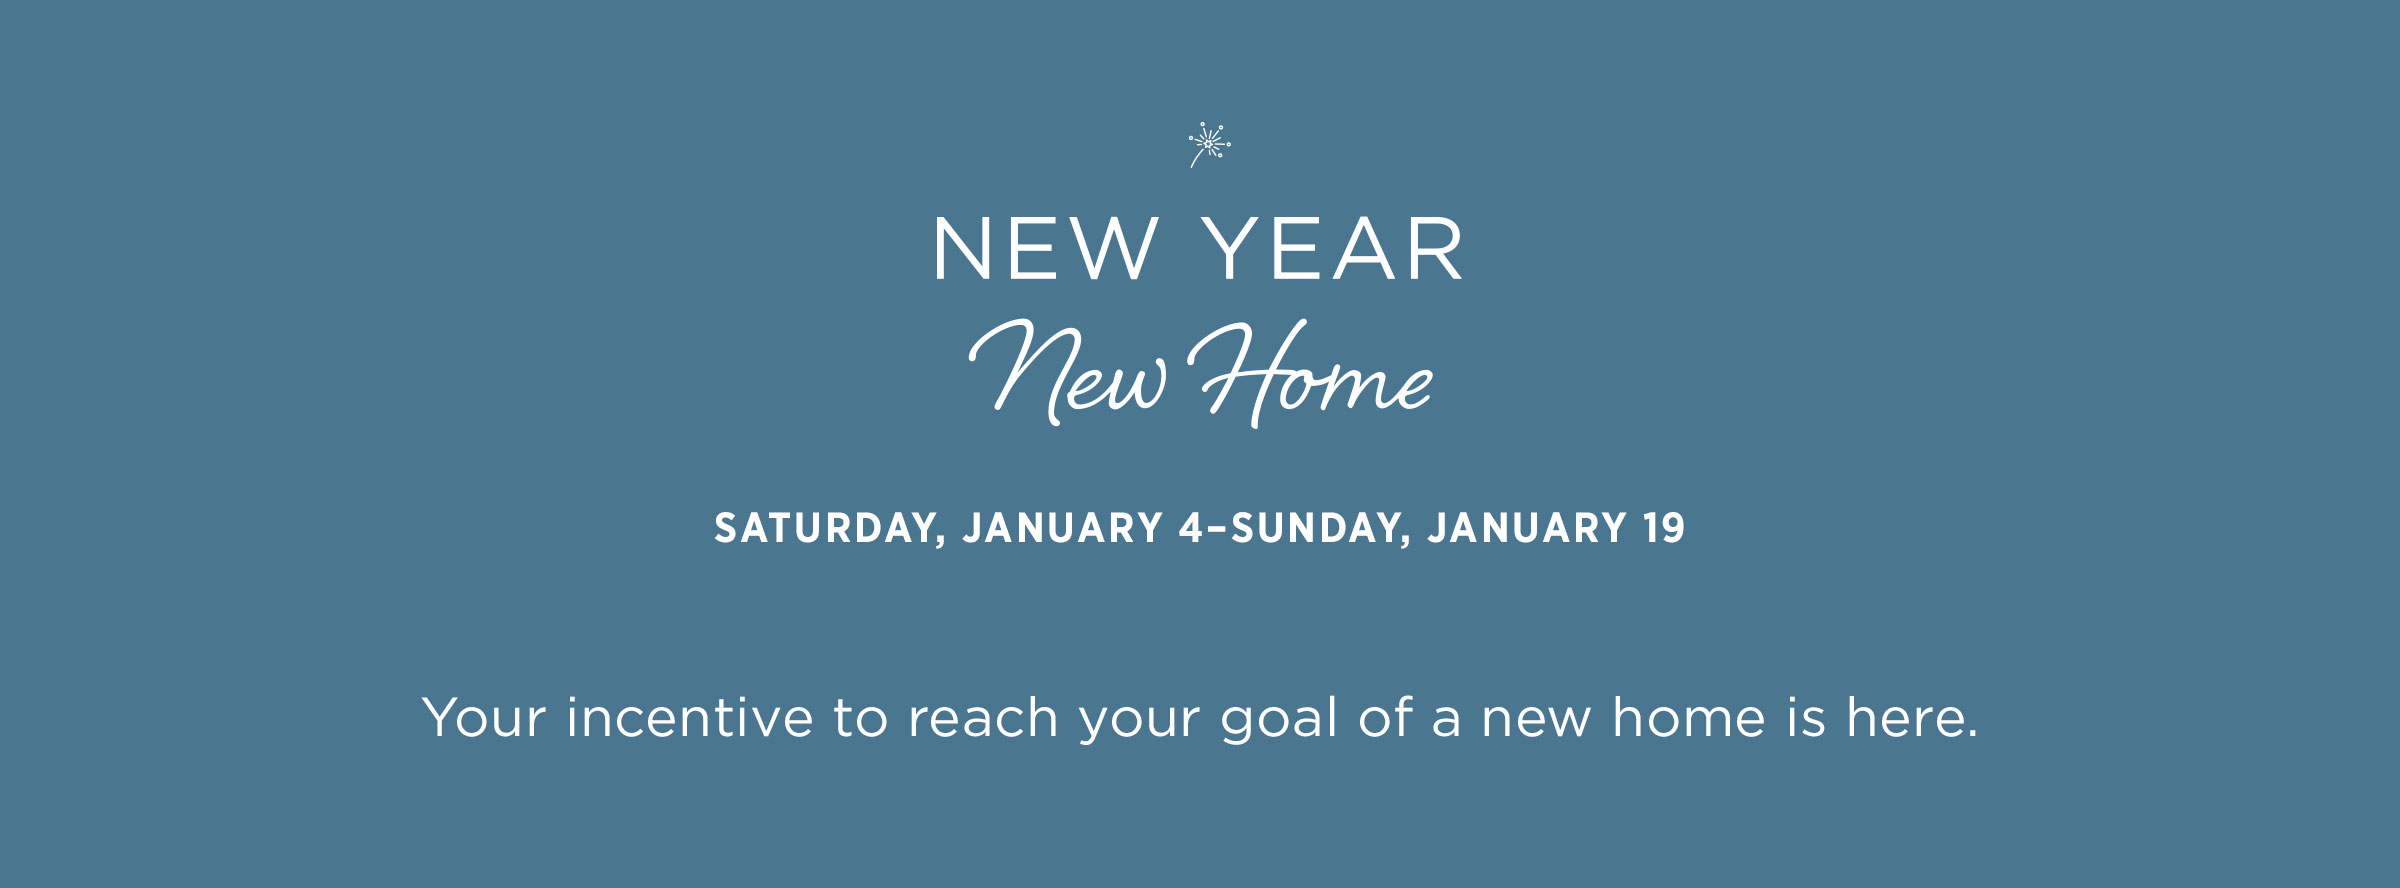 January 2020 New Year New Home